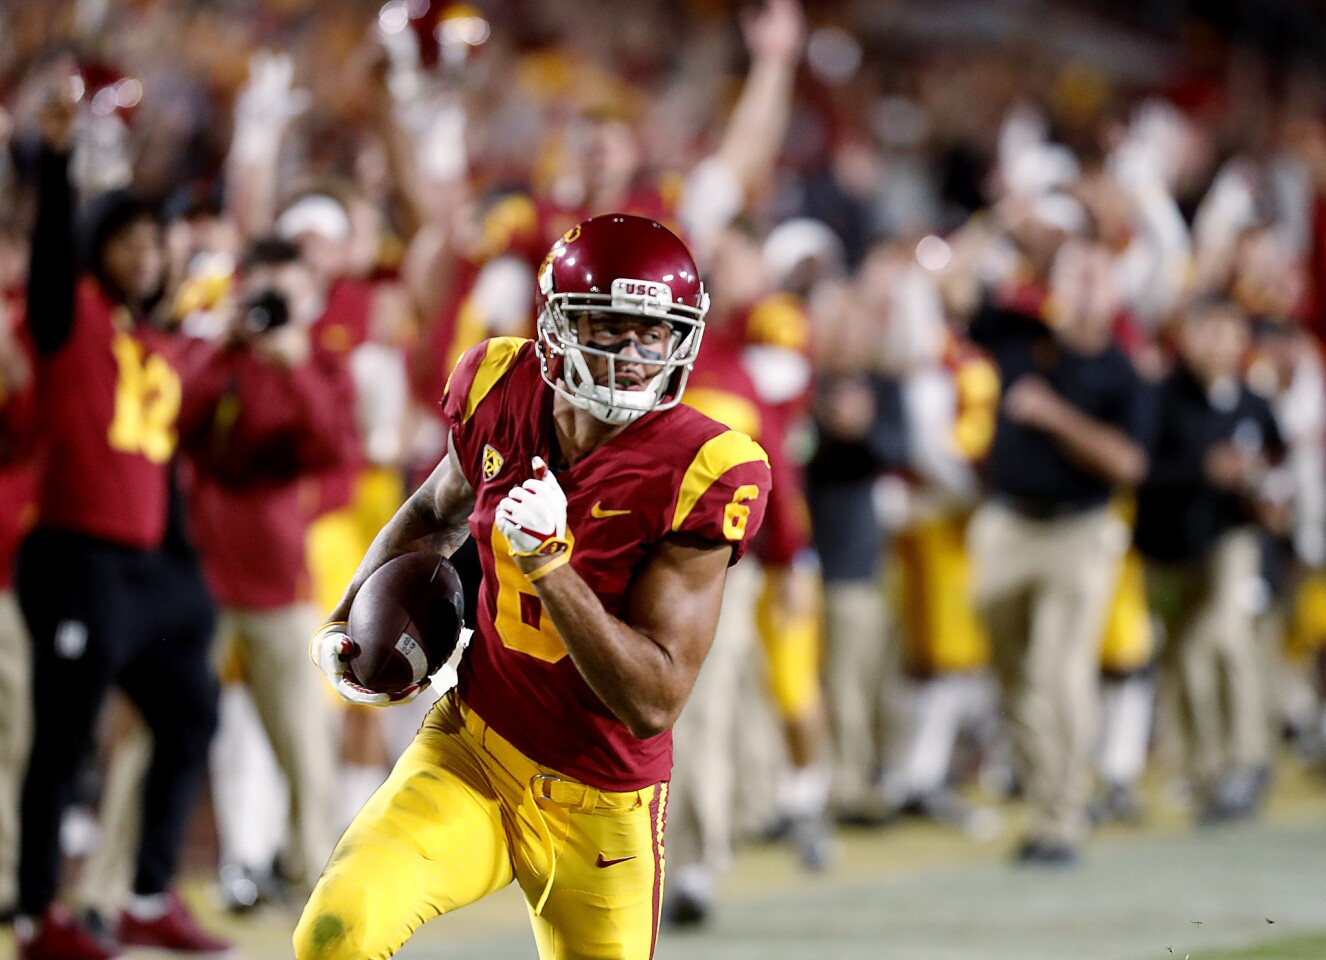 USC wide receiver Michael Pittman heads to the end zone for his first touchdown of the second quarter against Colorado on Saturday night at the Coliseum.